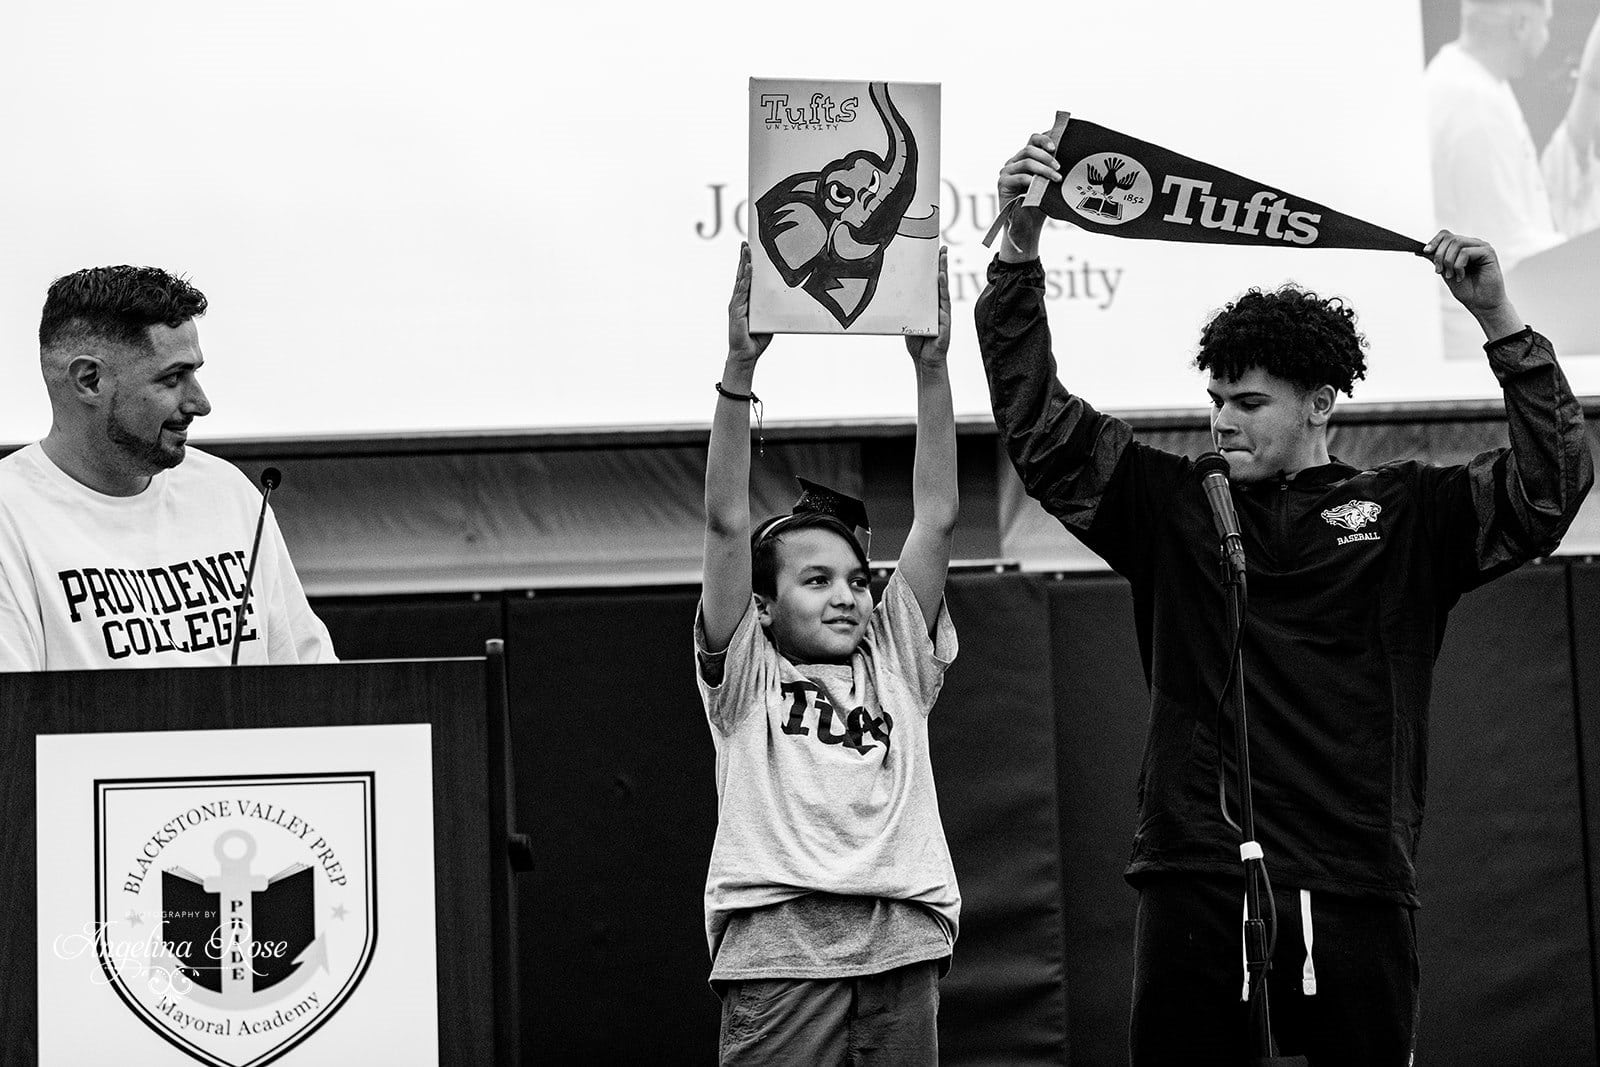 Scholar holding up Tufts pennant with little brother.